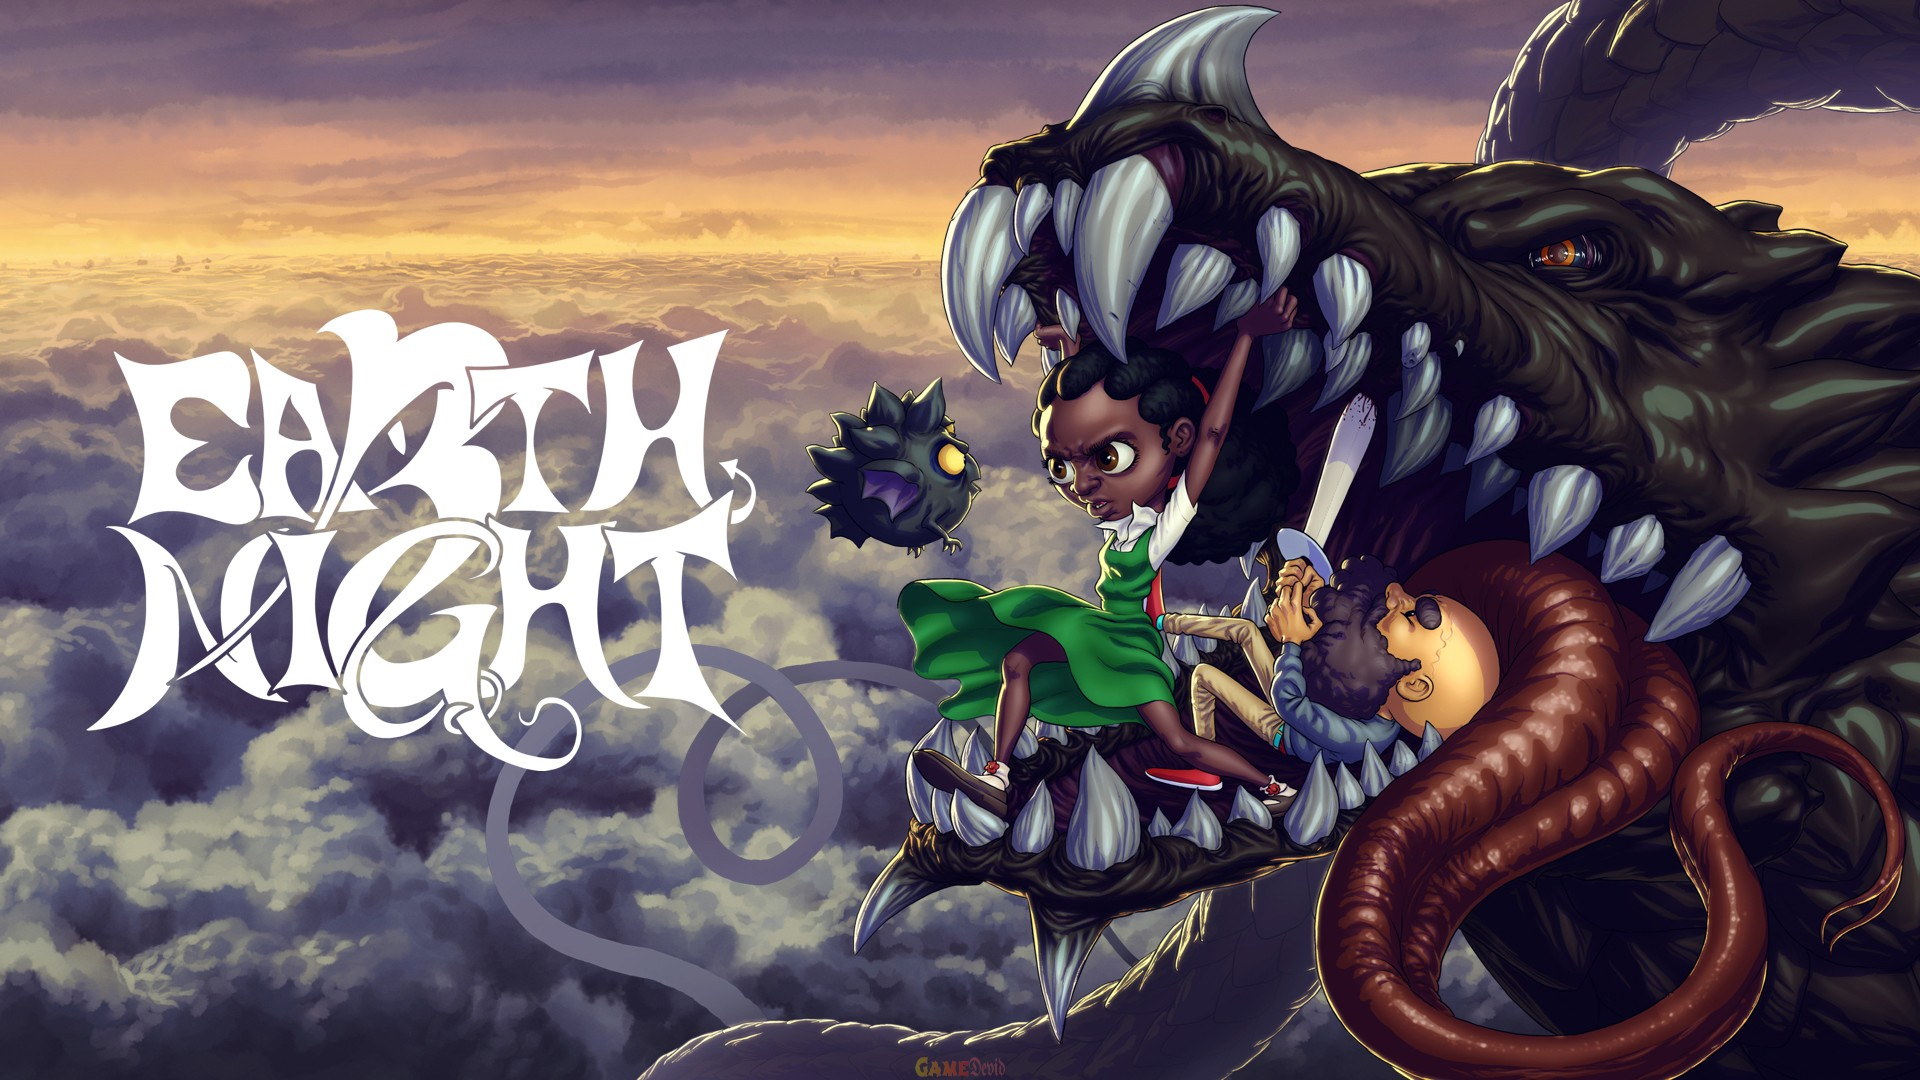 EARTHNIGHT COMPLETE PS4 GAME LATEST EDITION DOWNLOAD